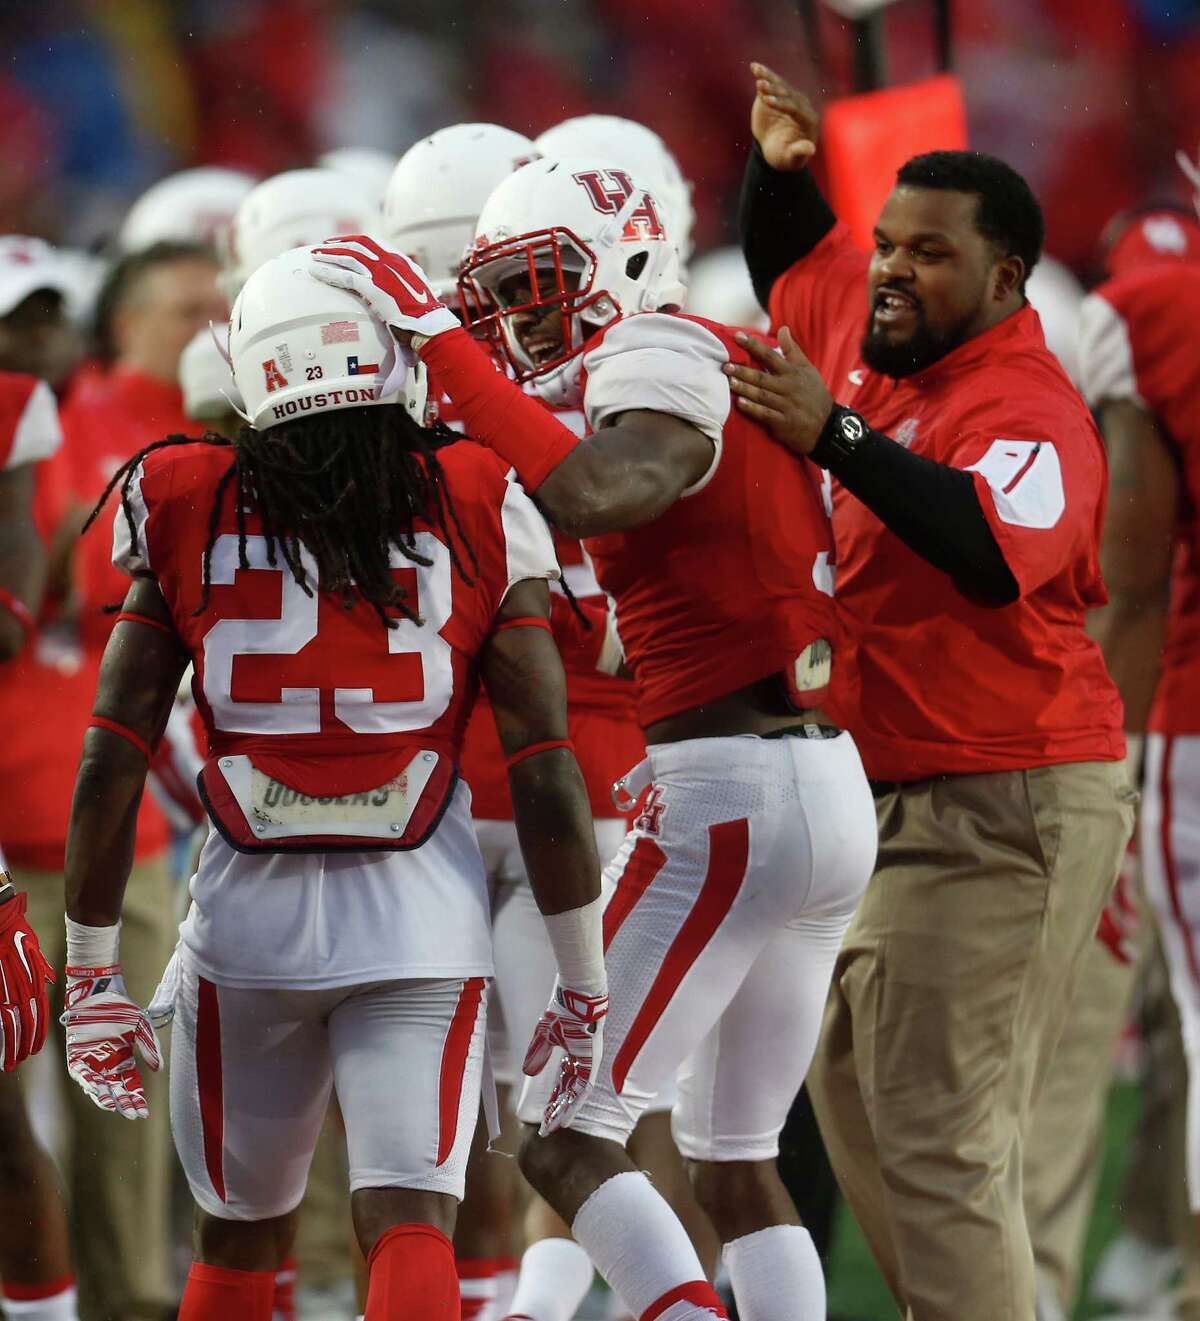 Houston Cougars safety Trevon Stewart (23) celebrates his sack and safety on Cincinnati Bearcats quarterback Gunner Kiel (11) with William Jackson III (3) during the second half of a college football game at TDECU Stadium on Saturday, Nov. 7, 2015.